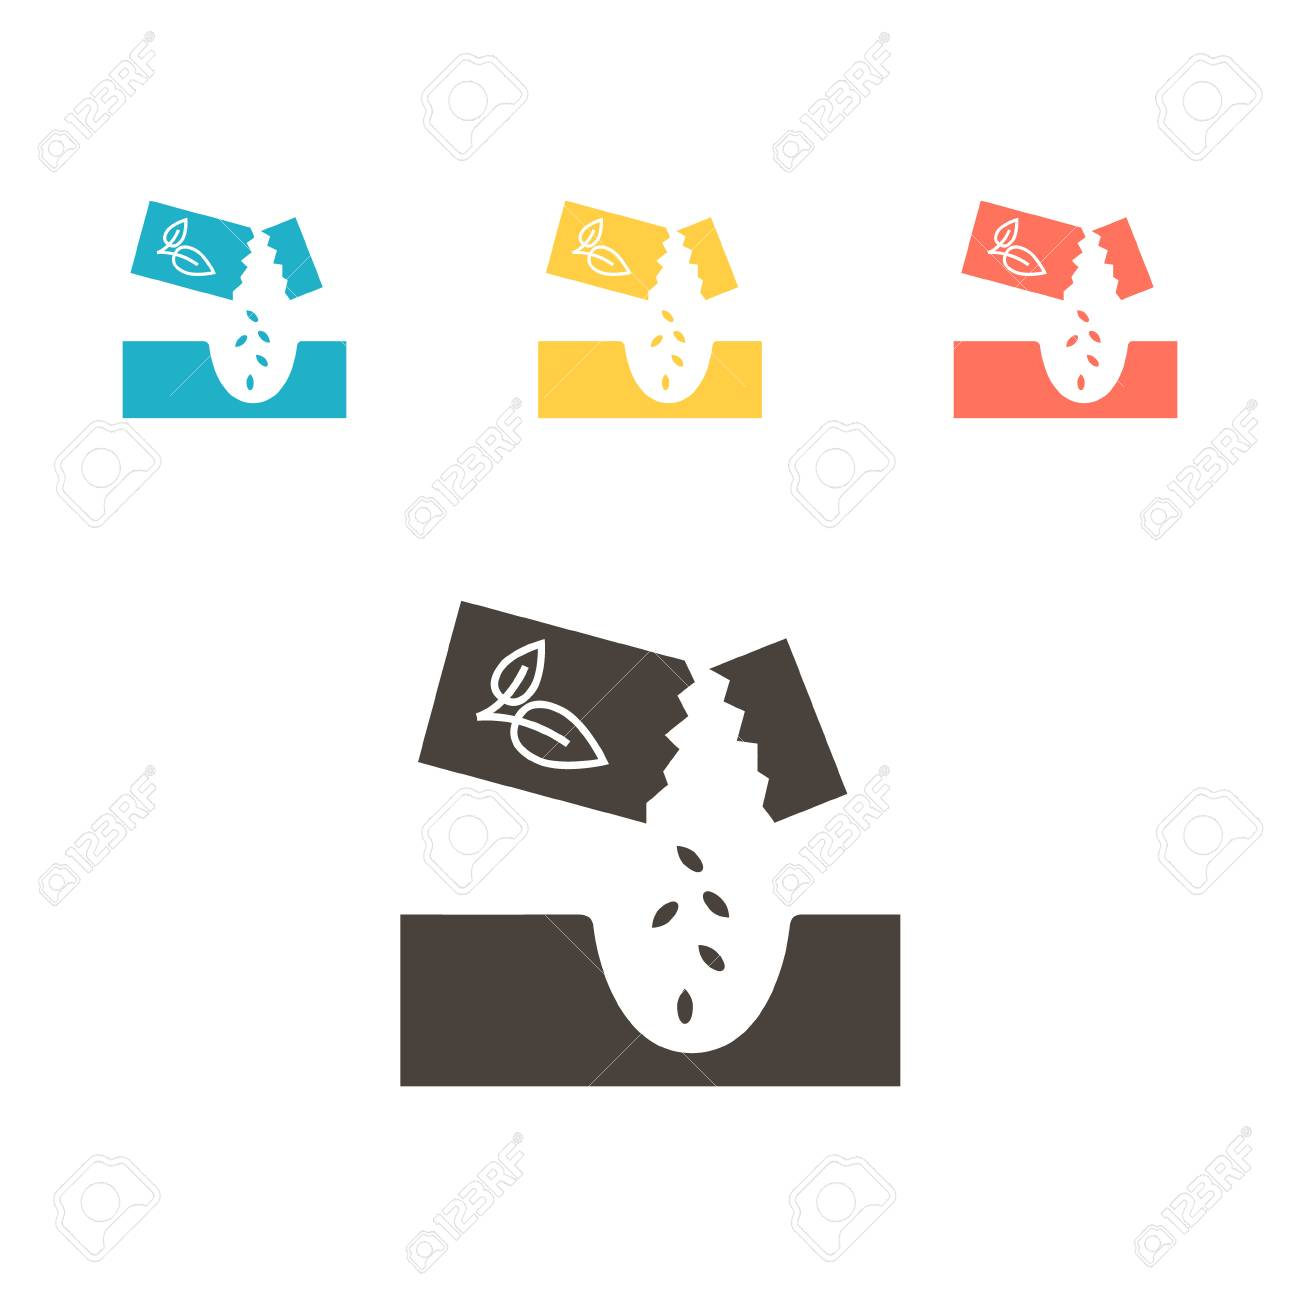 Seed packet icon. Vector illustration - 109879263